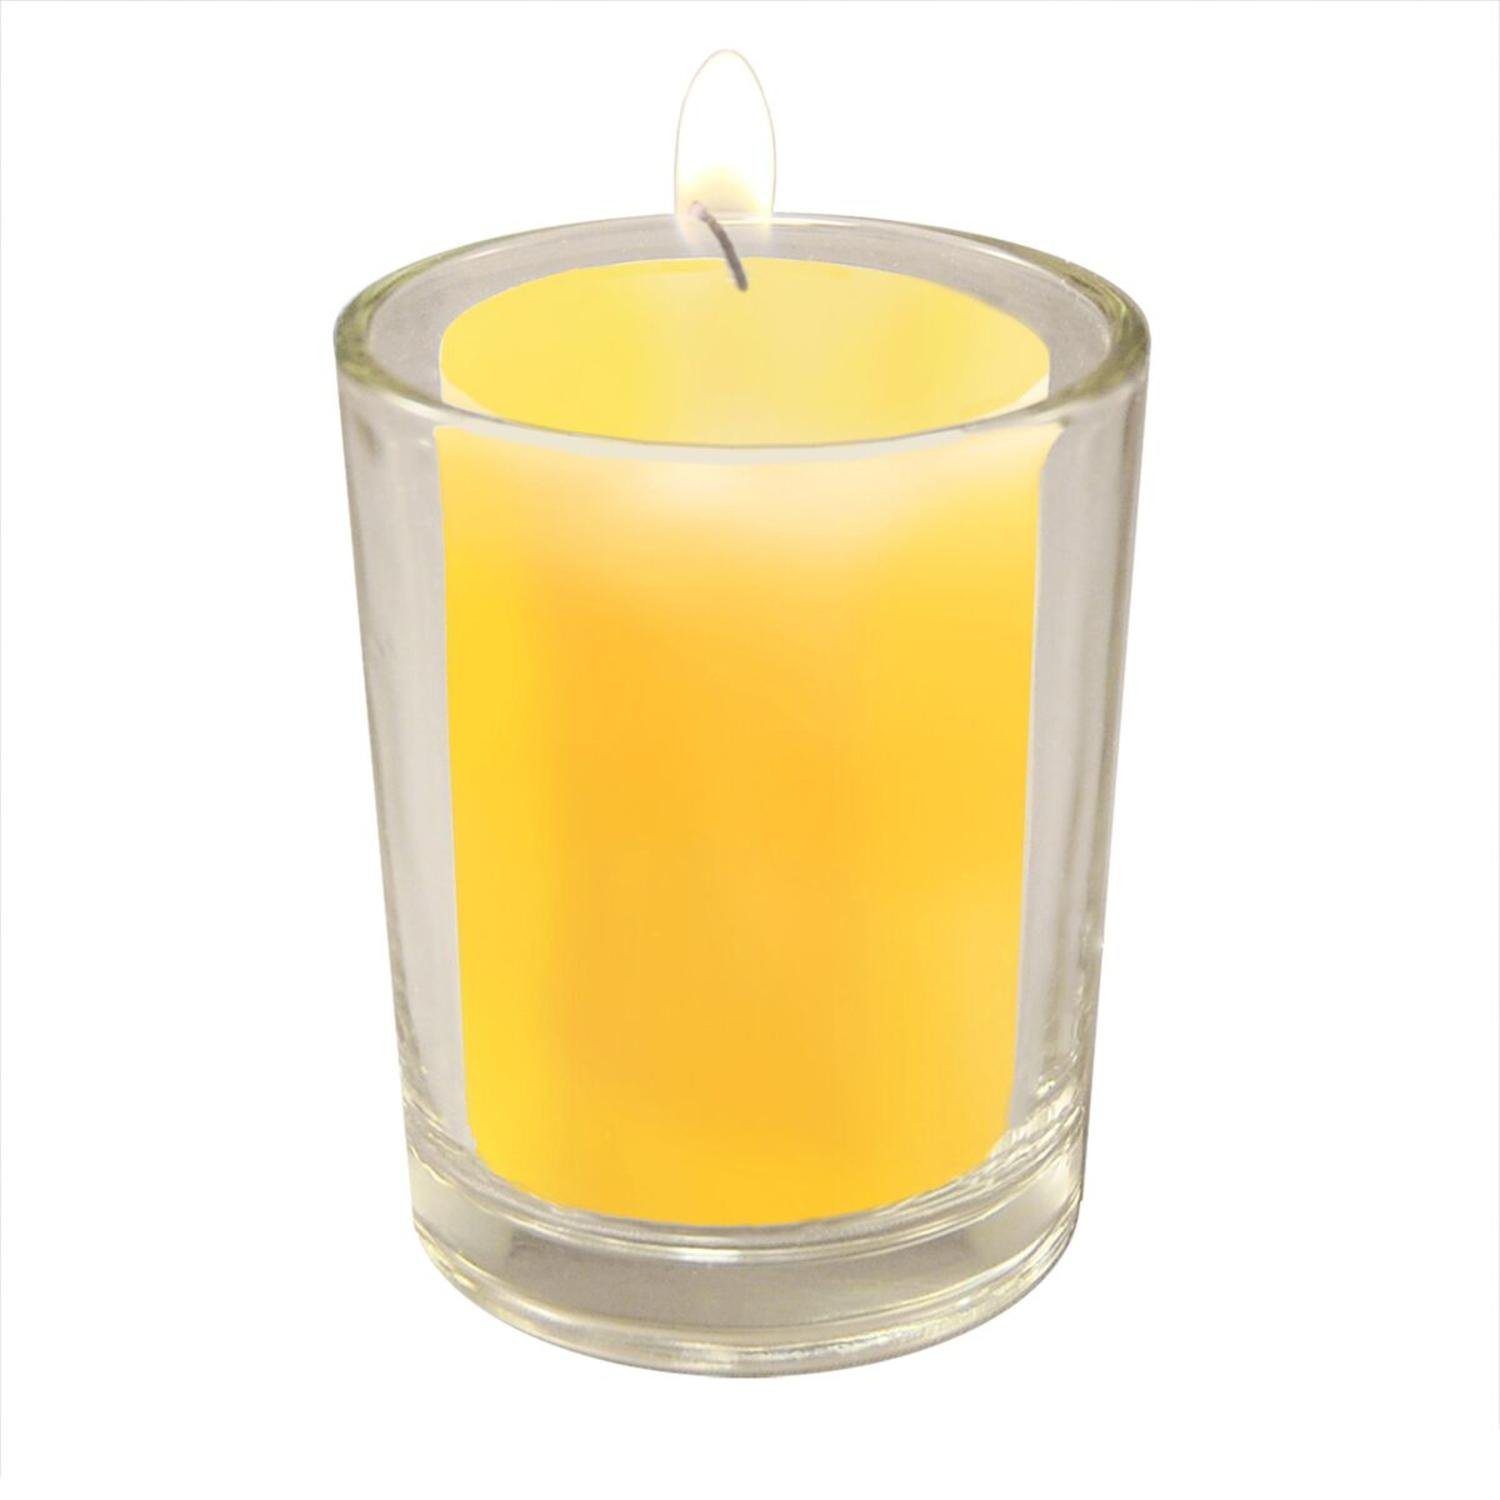 CC Home Furnishings Club Pack of 36 Citronella Candles with 12 Clear Glass Votive Candle Holders 2.5''